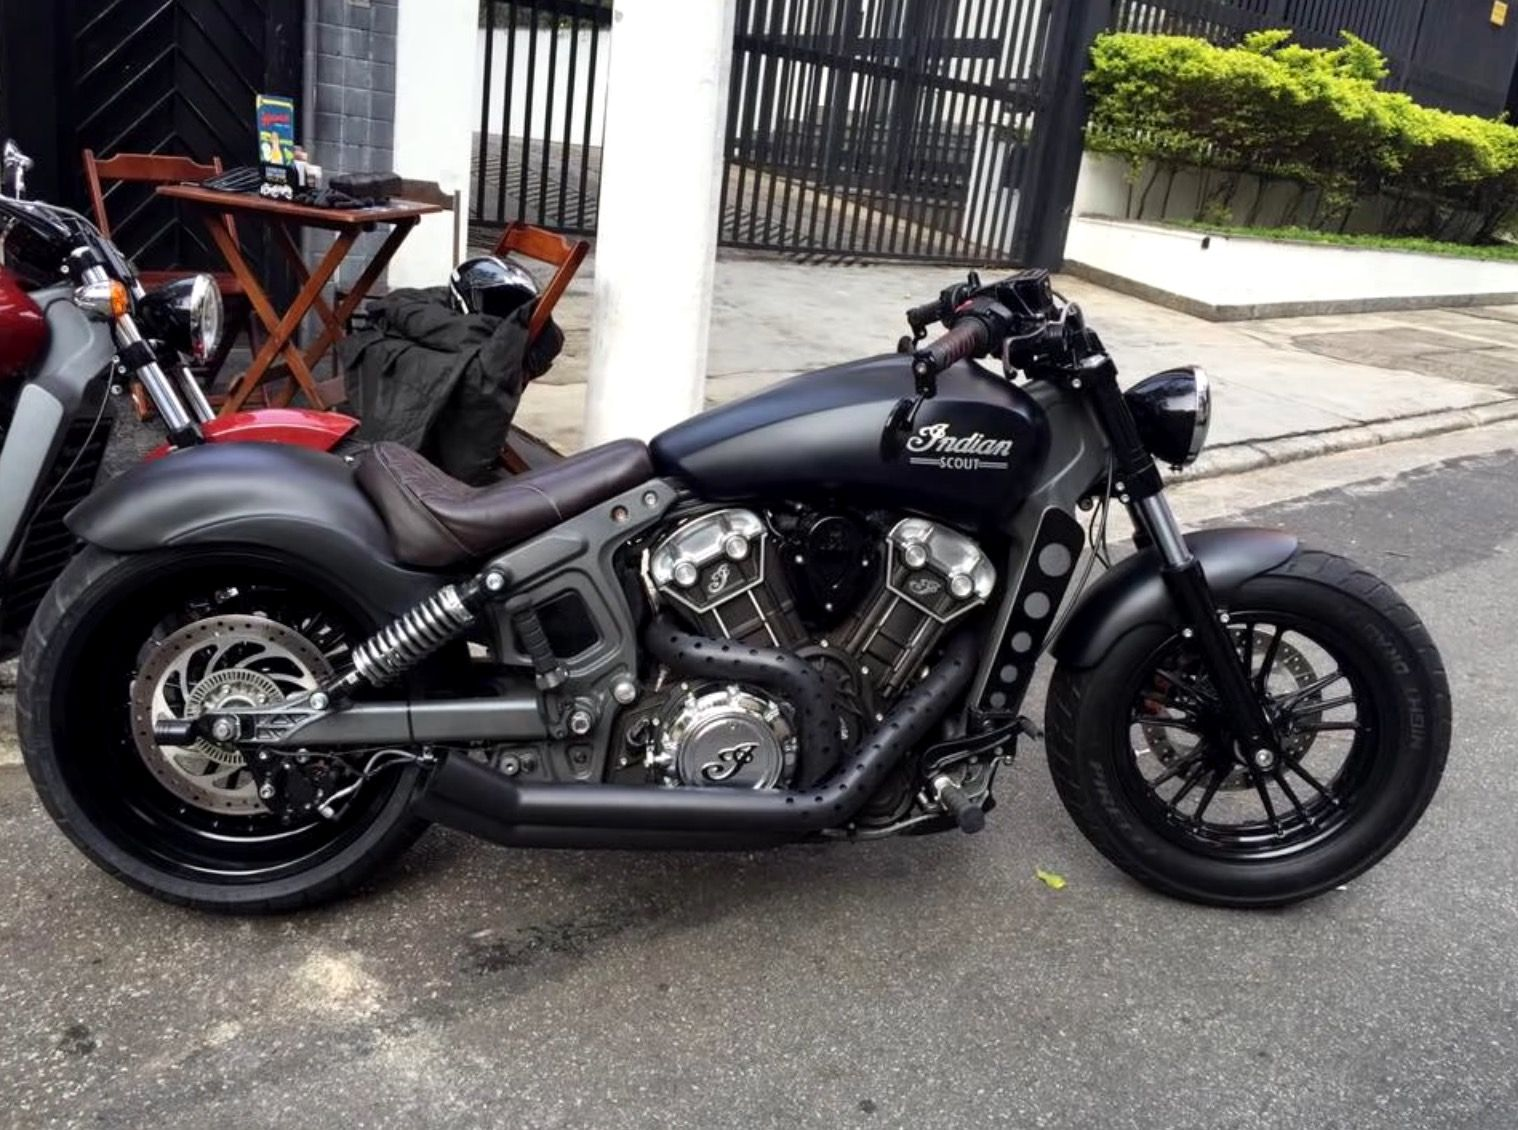 Indian Scout Bobber Bobber Motorcycle Indian Motorcycle Indian